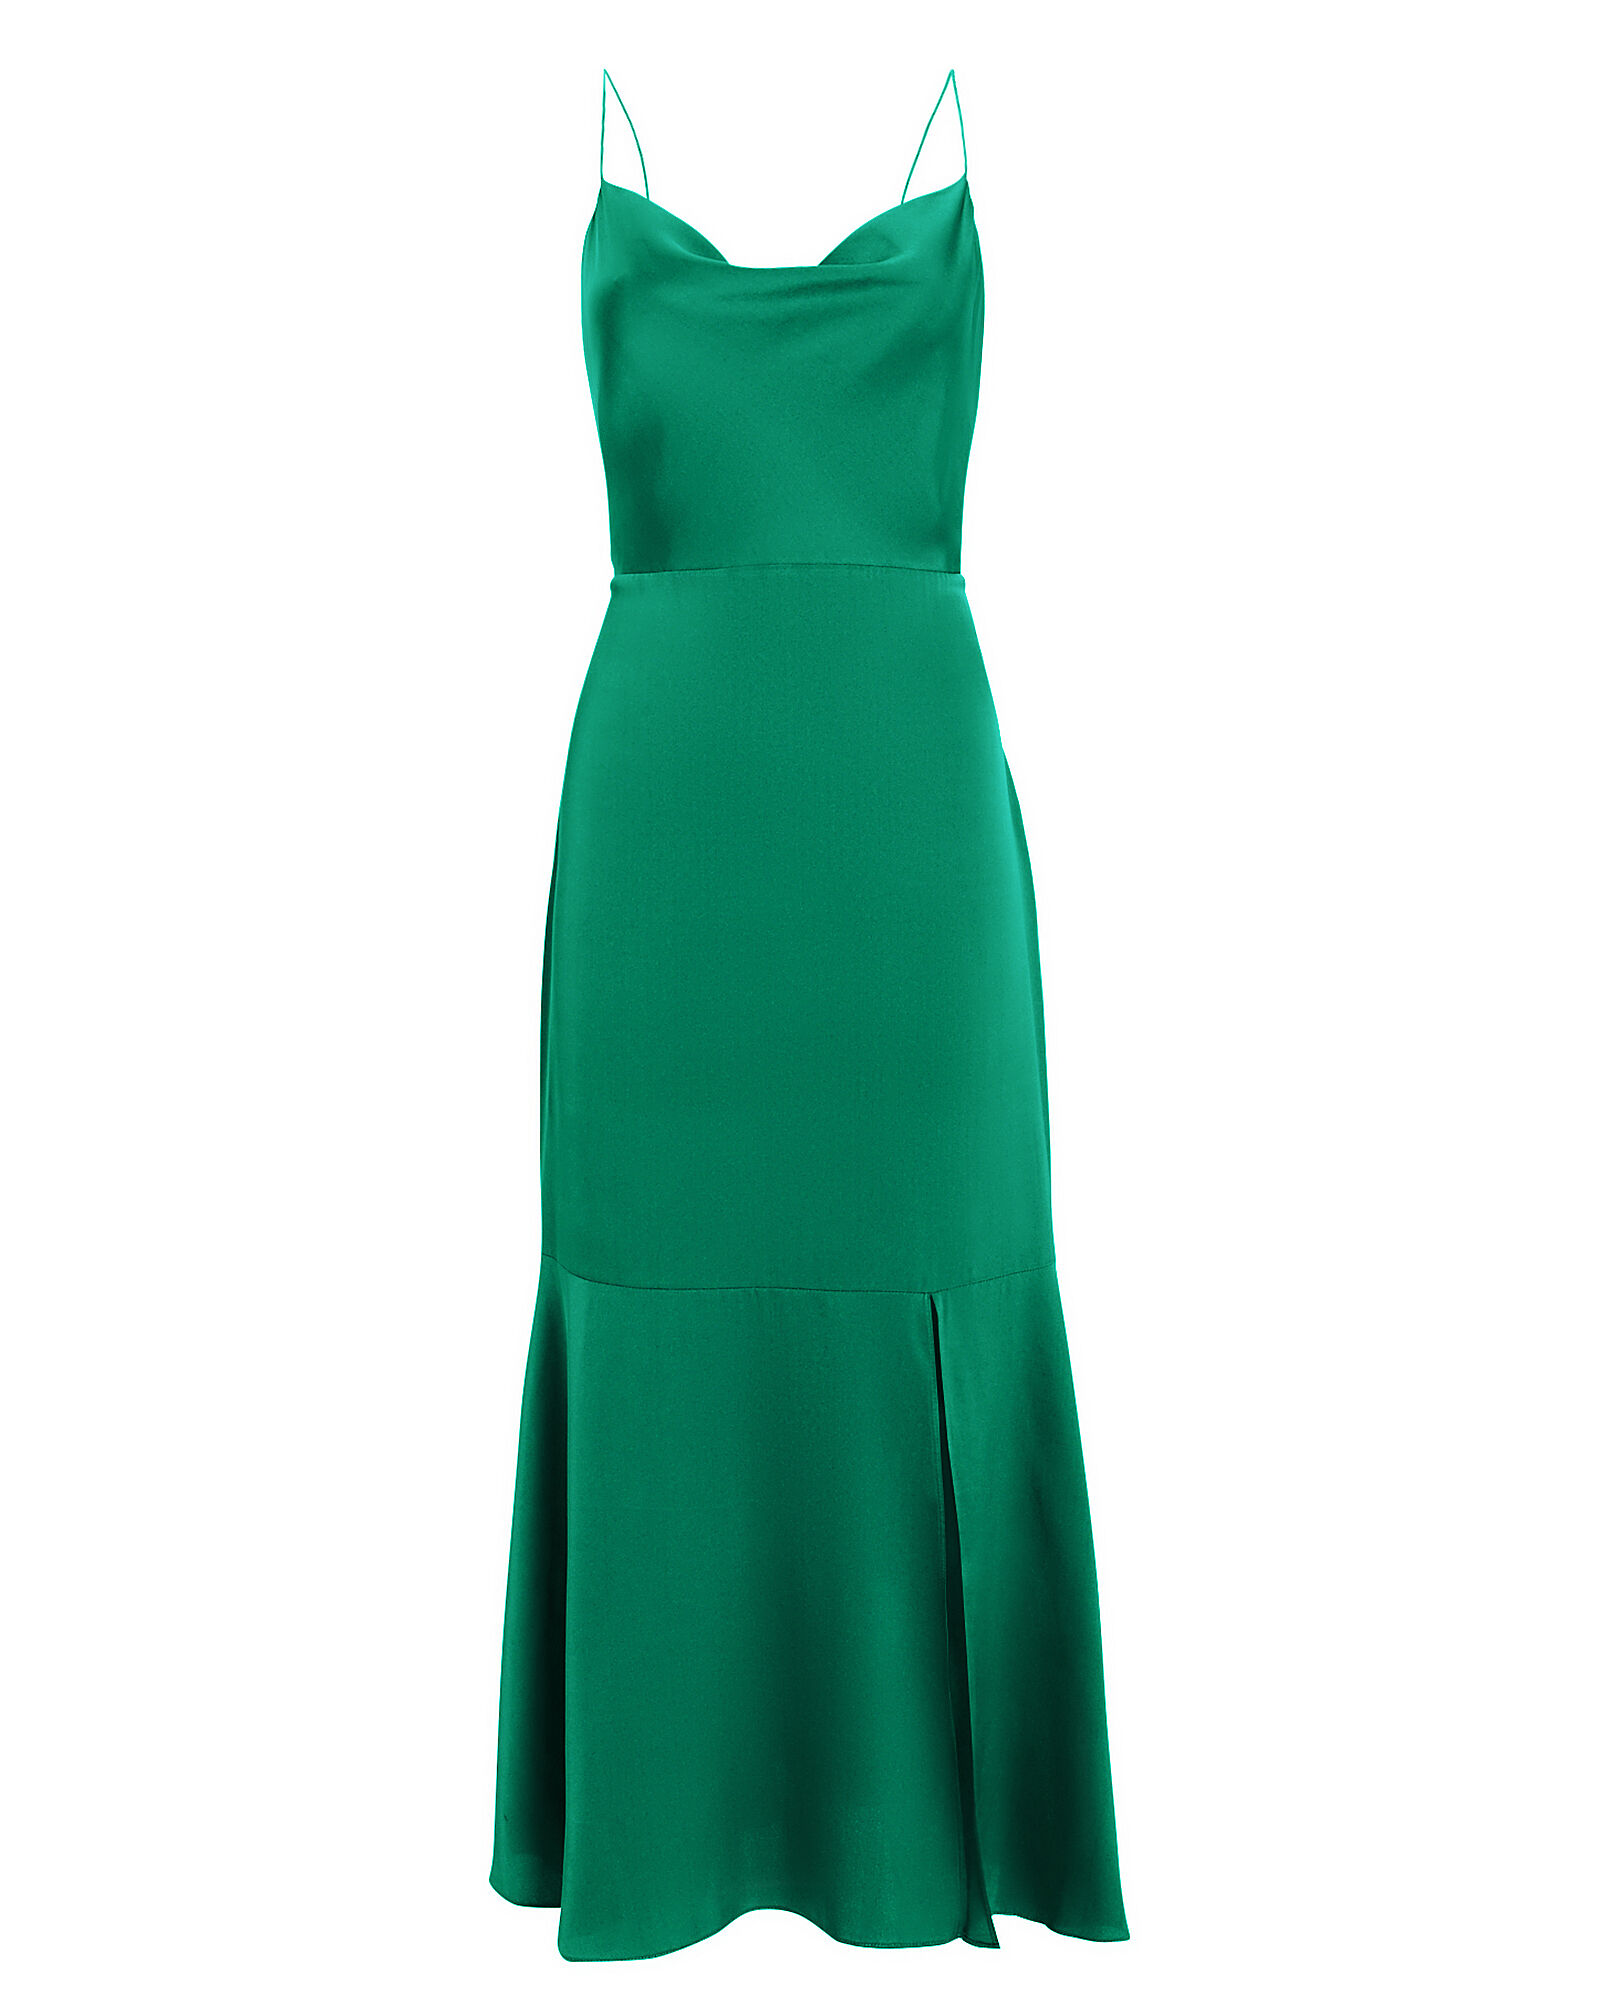 Paris Charmeuse Slip Dress, EMERALD, hi-res